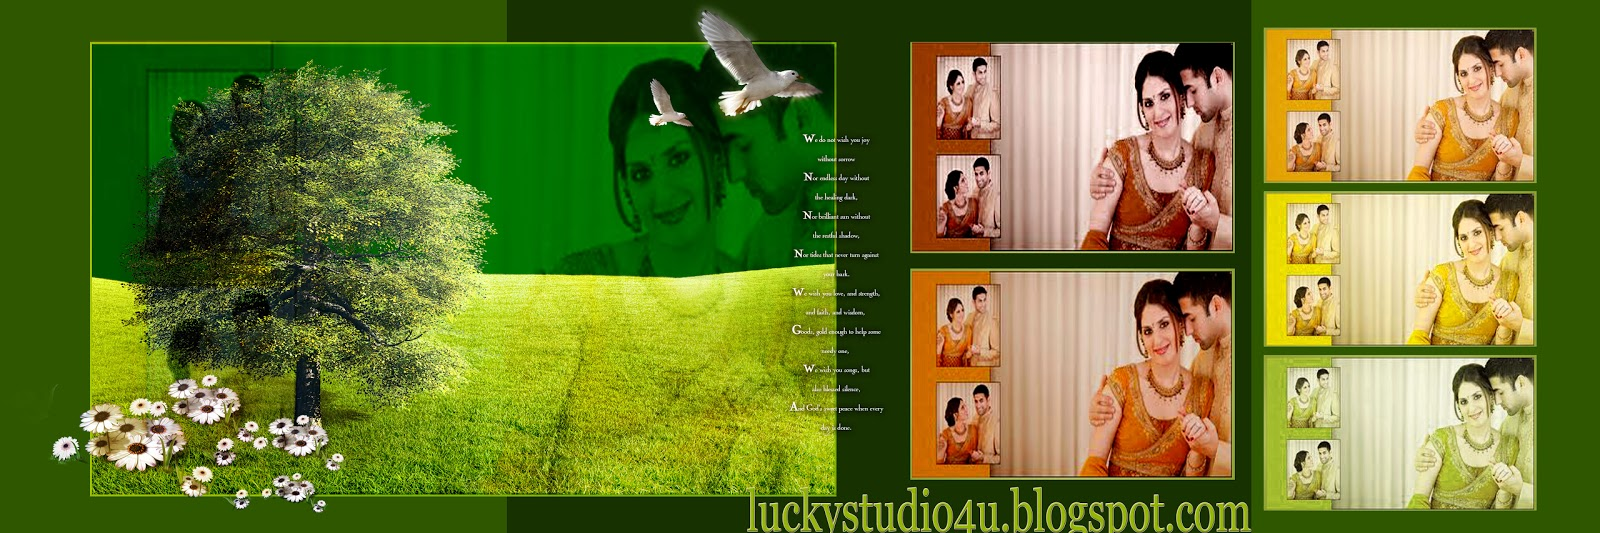 background psd file 12x36 free download karizma wedding background psd ...